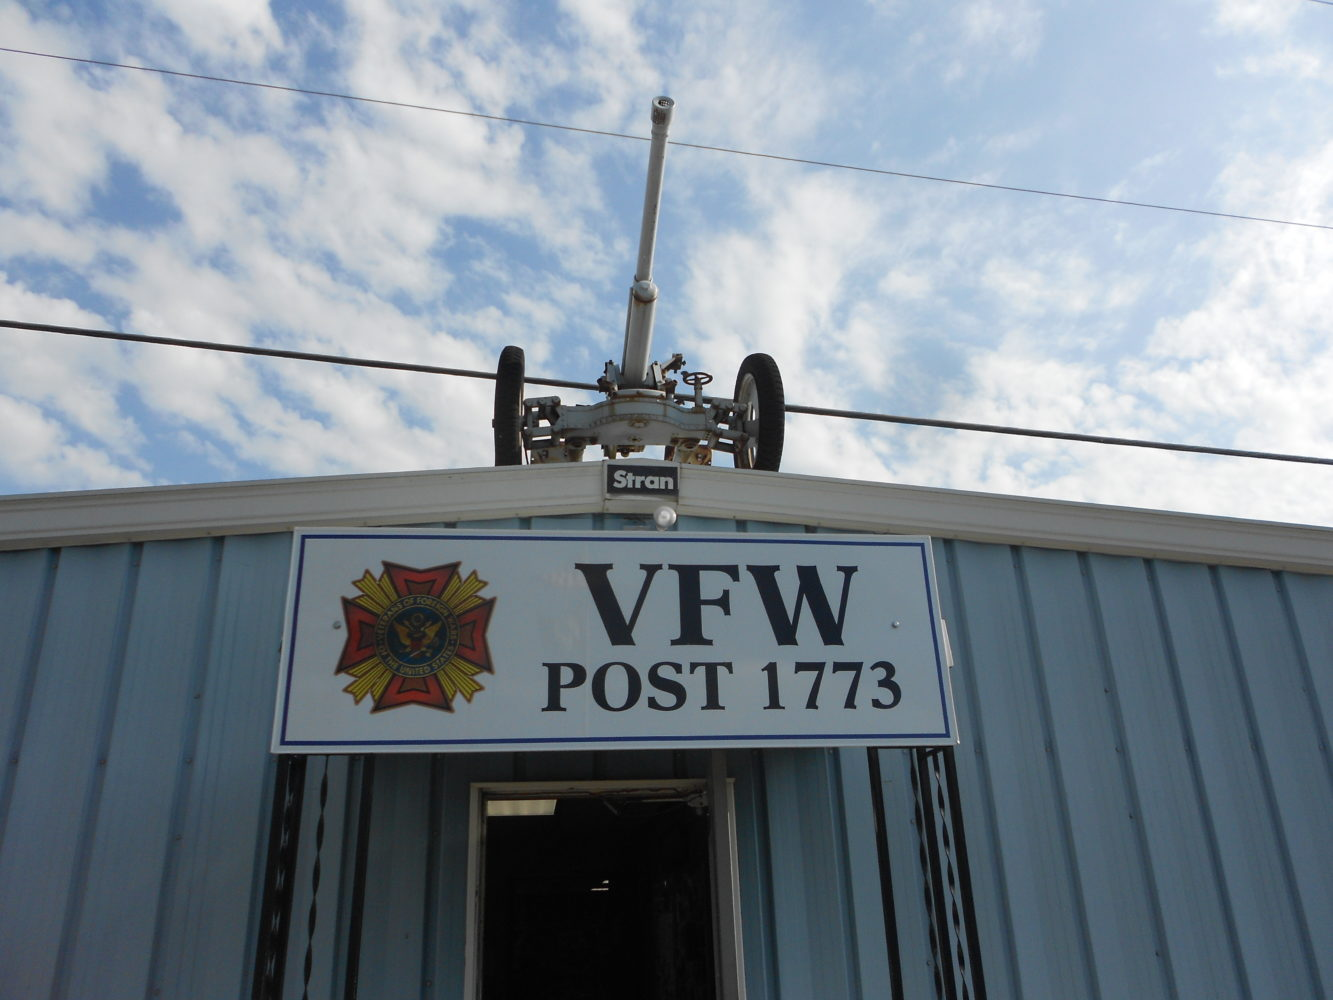 VFW Post 1773 Cancellation